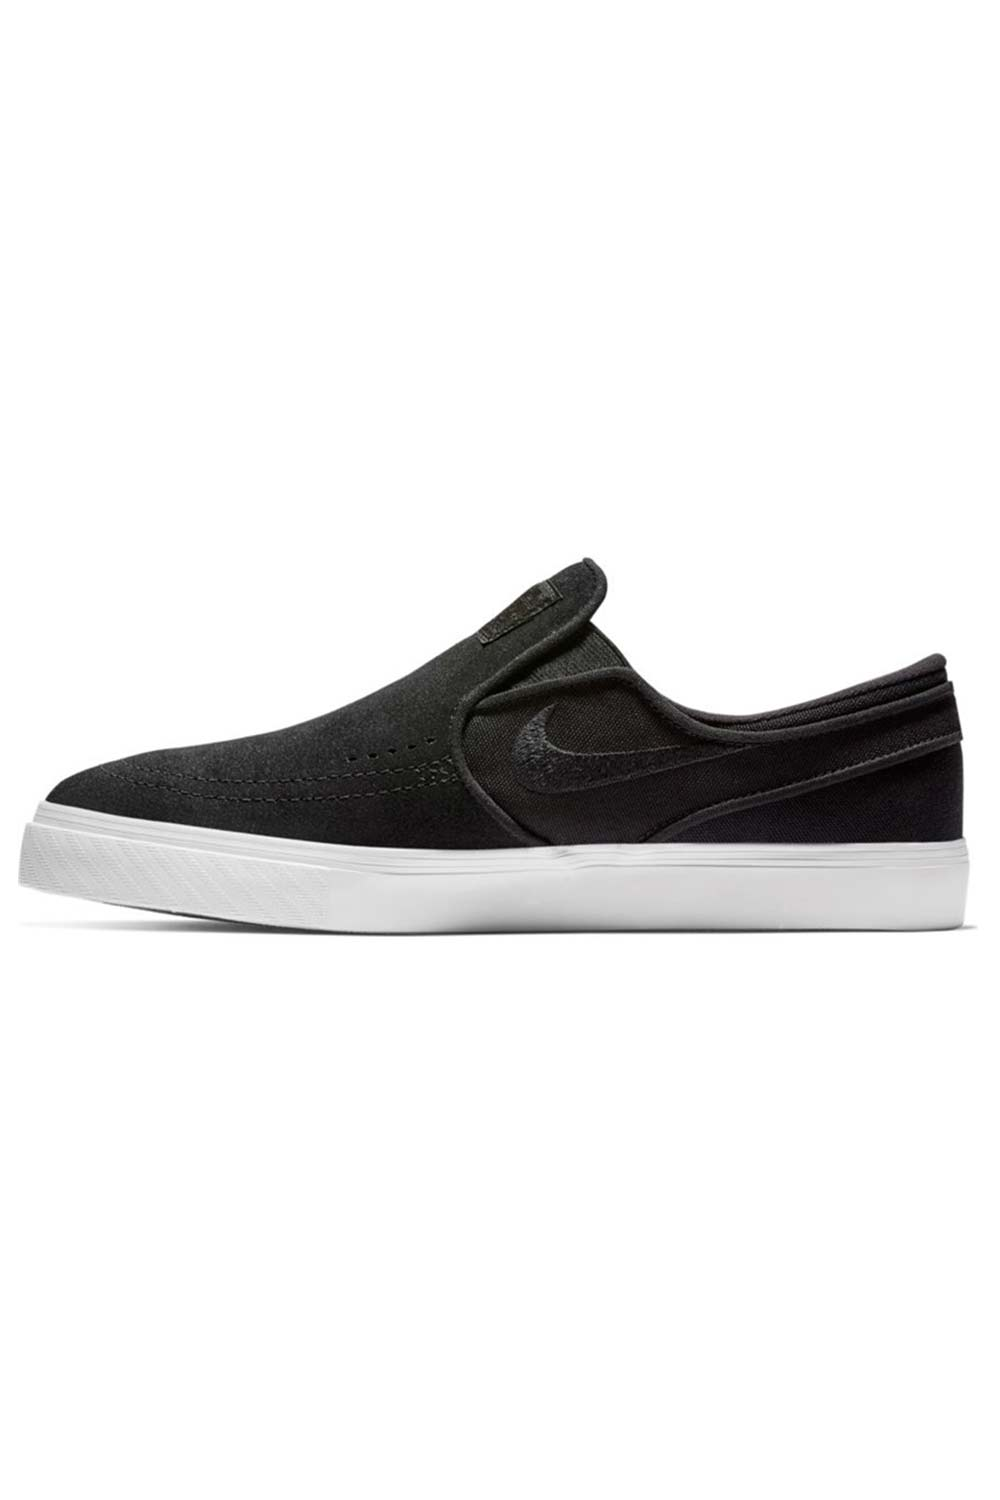 Buy Nike SB Zoom Stefan Janoski Slip On | Buy Nike SB Footwear Online